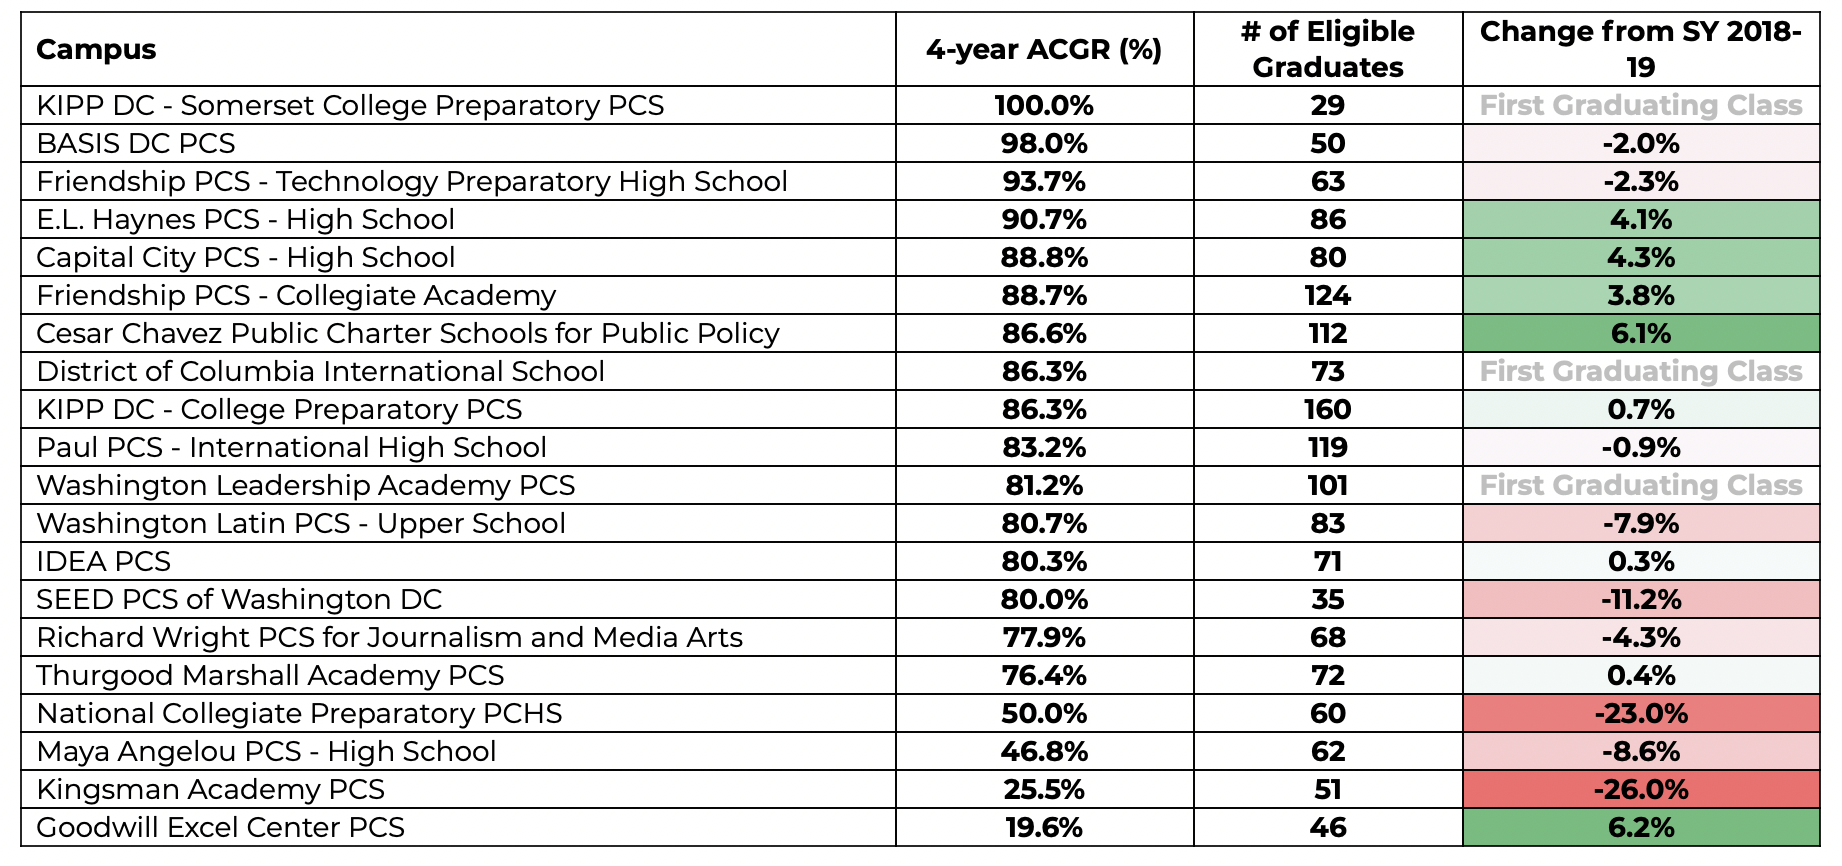 DC Public Charter School 4-year ACGR Rates